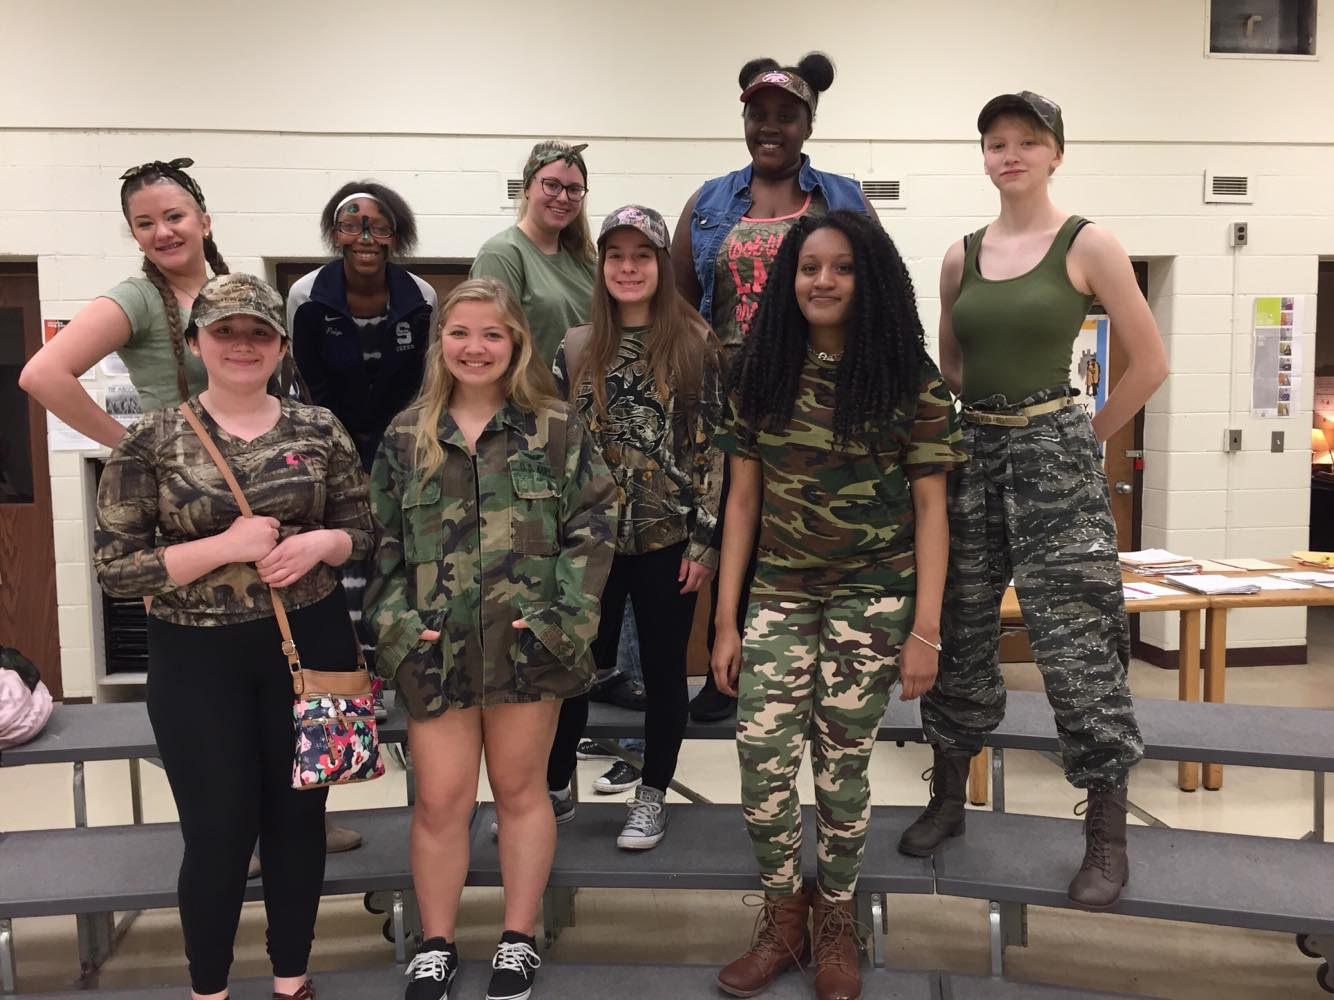 Symphonic choir students participate all dressed up in their camouflage gear.